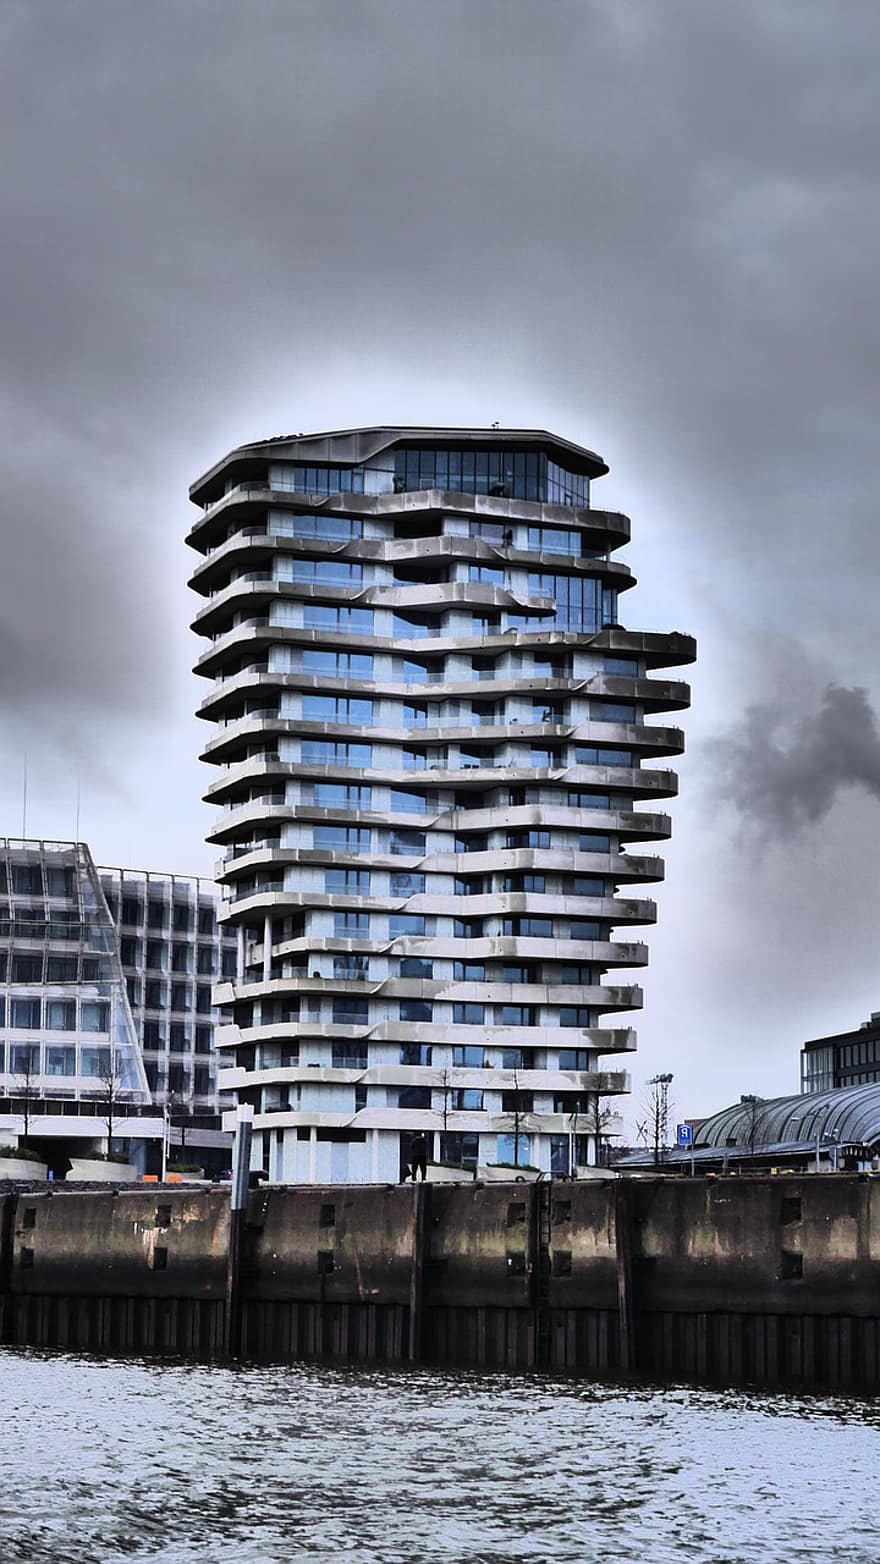 Marco Polo Tower Harbour City, Hamburg, Hanseatic City, Marco-polo-tower, Architecture, Water | Pikist